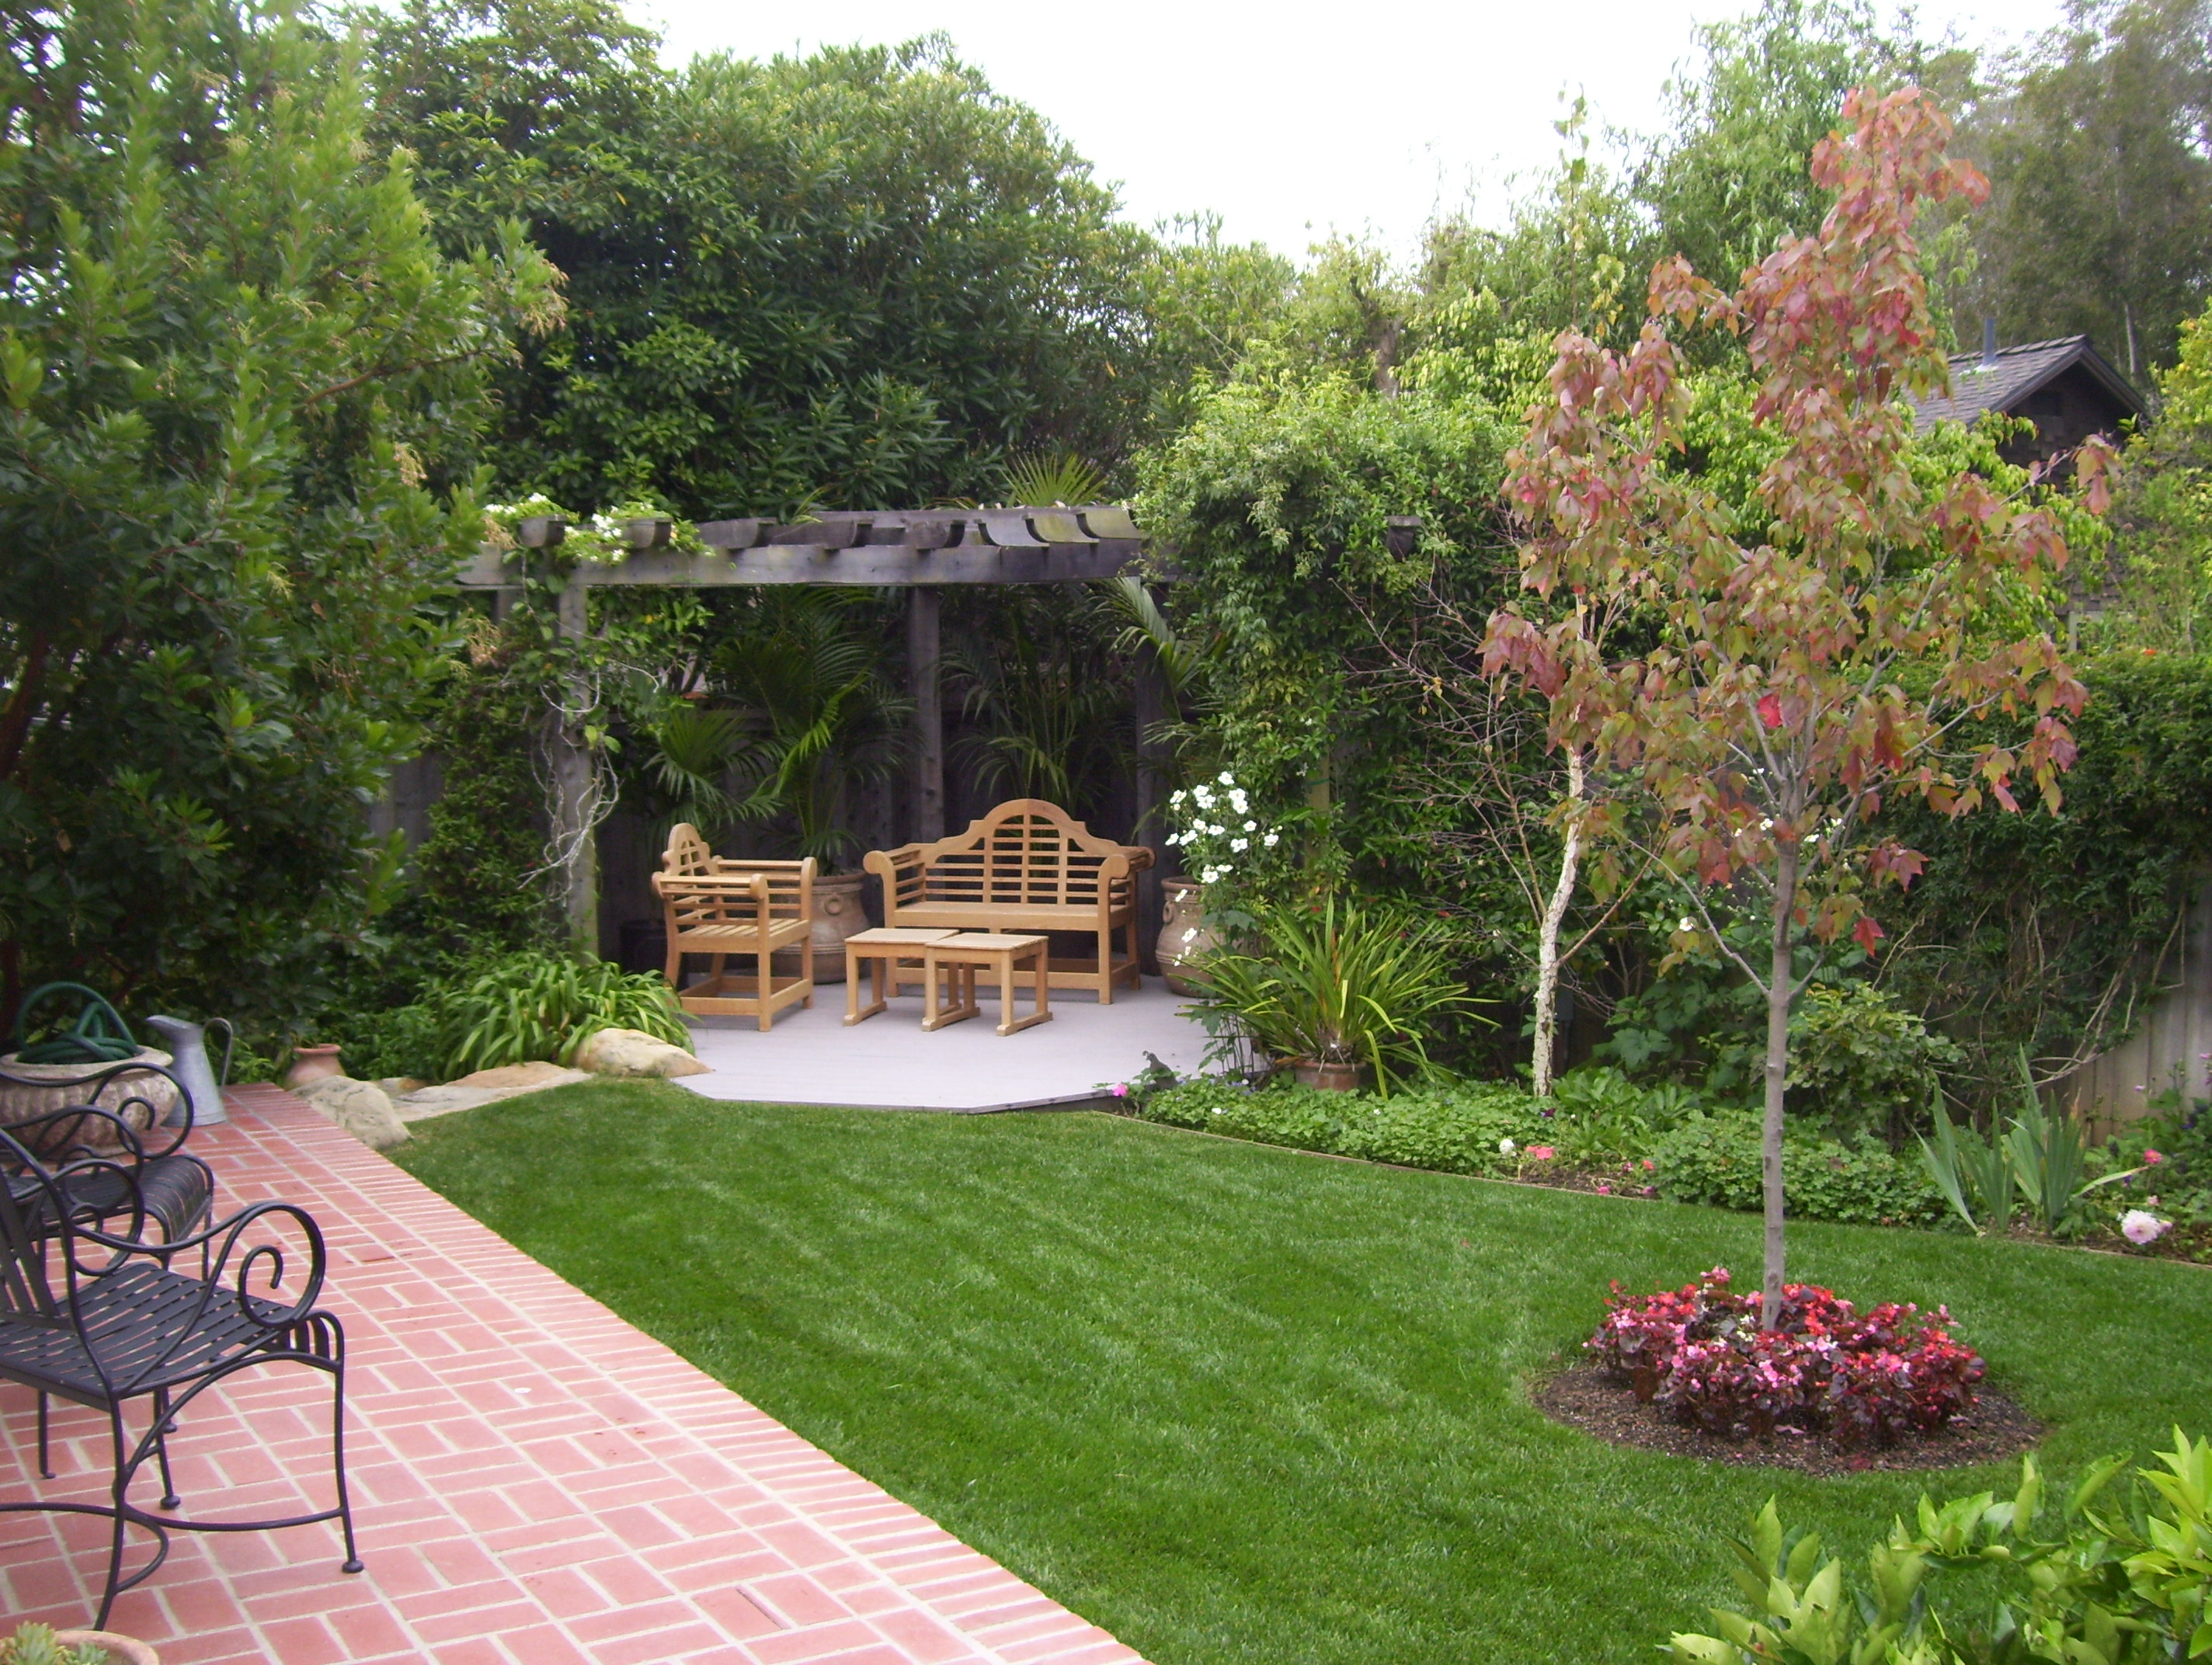 Backyard landscaping ideas santa barbara down to earth for Patio landscaping